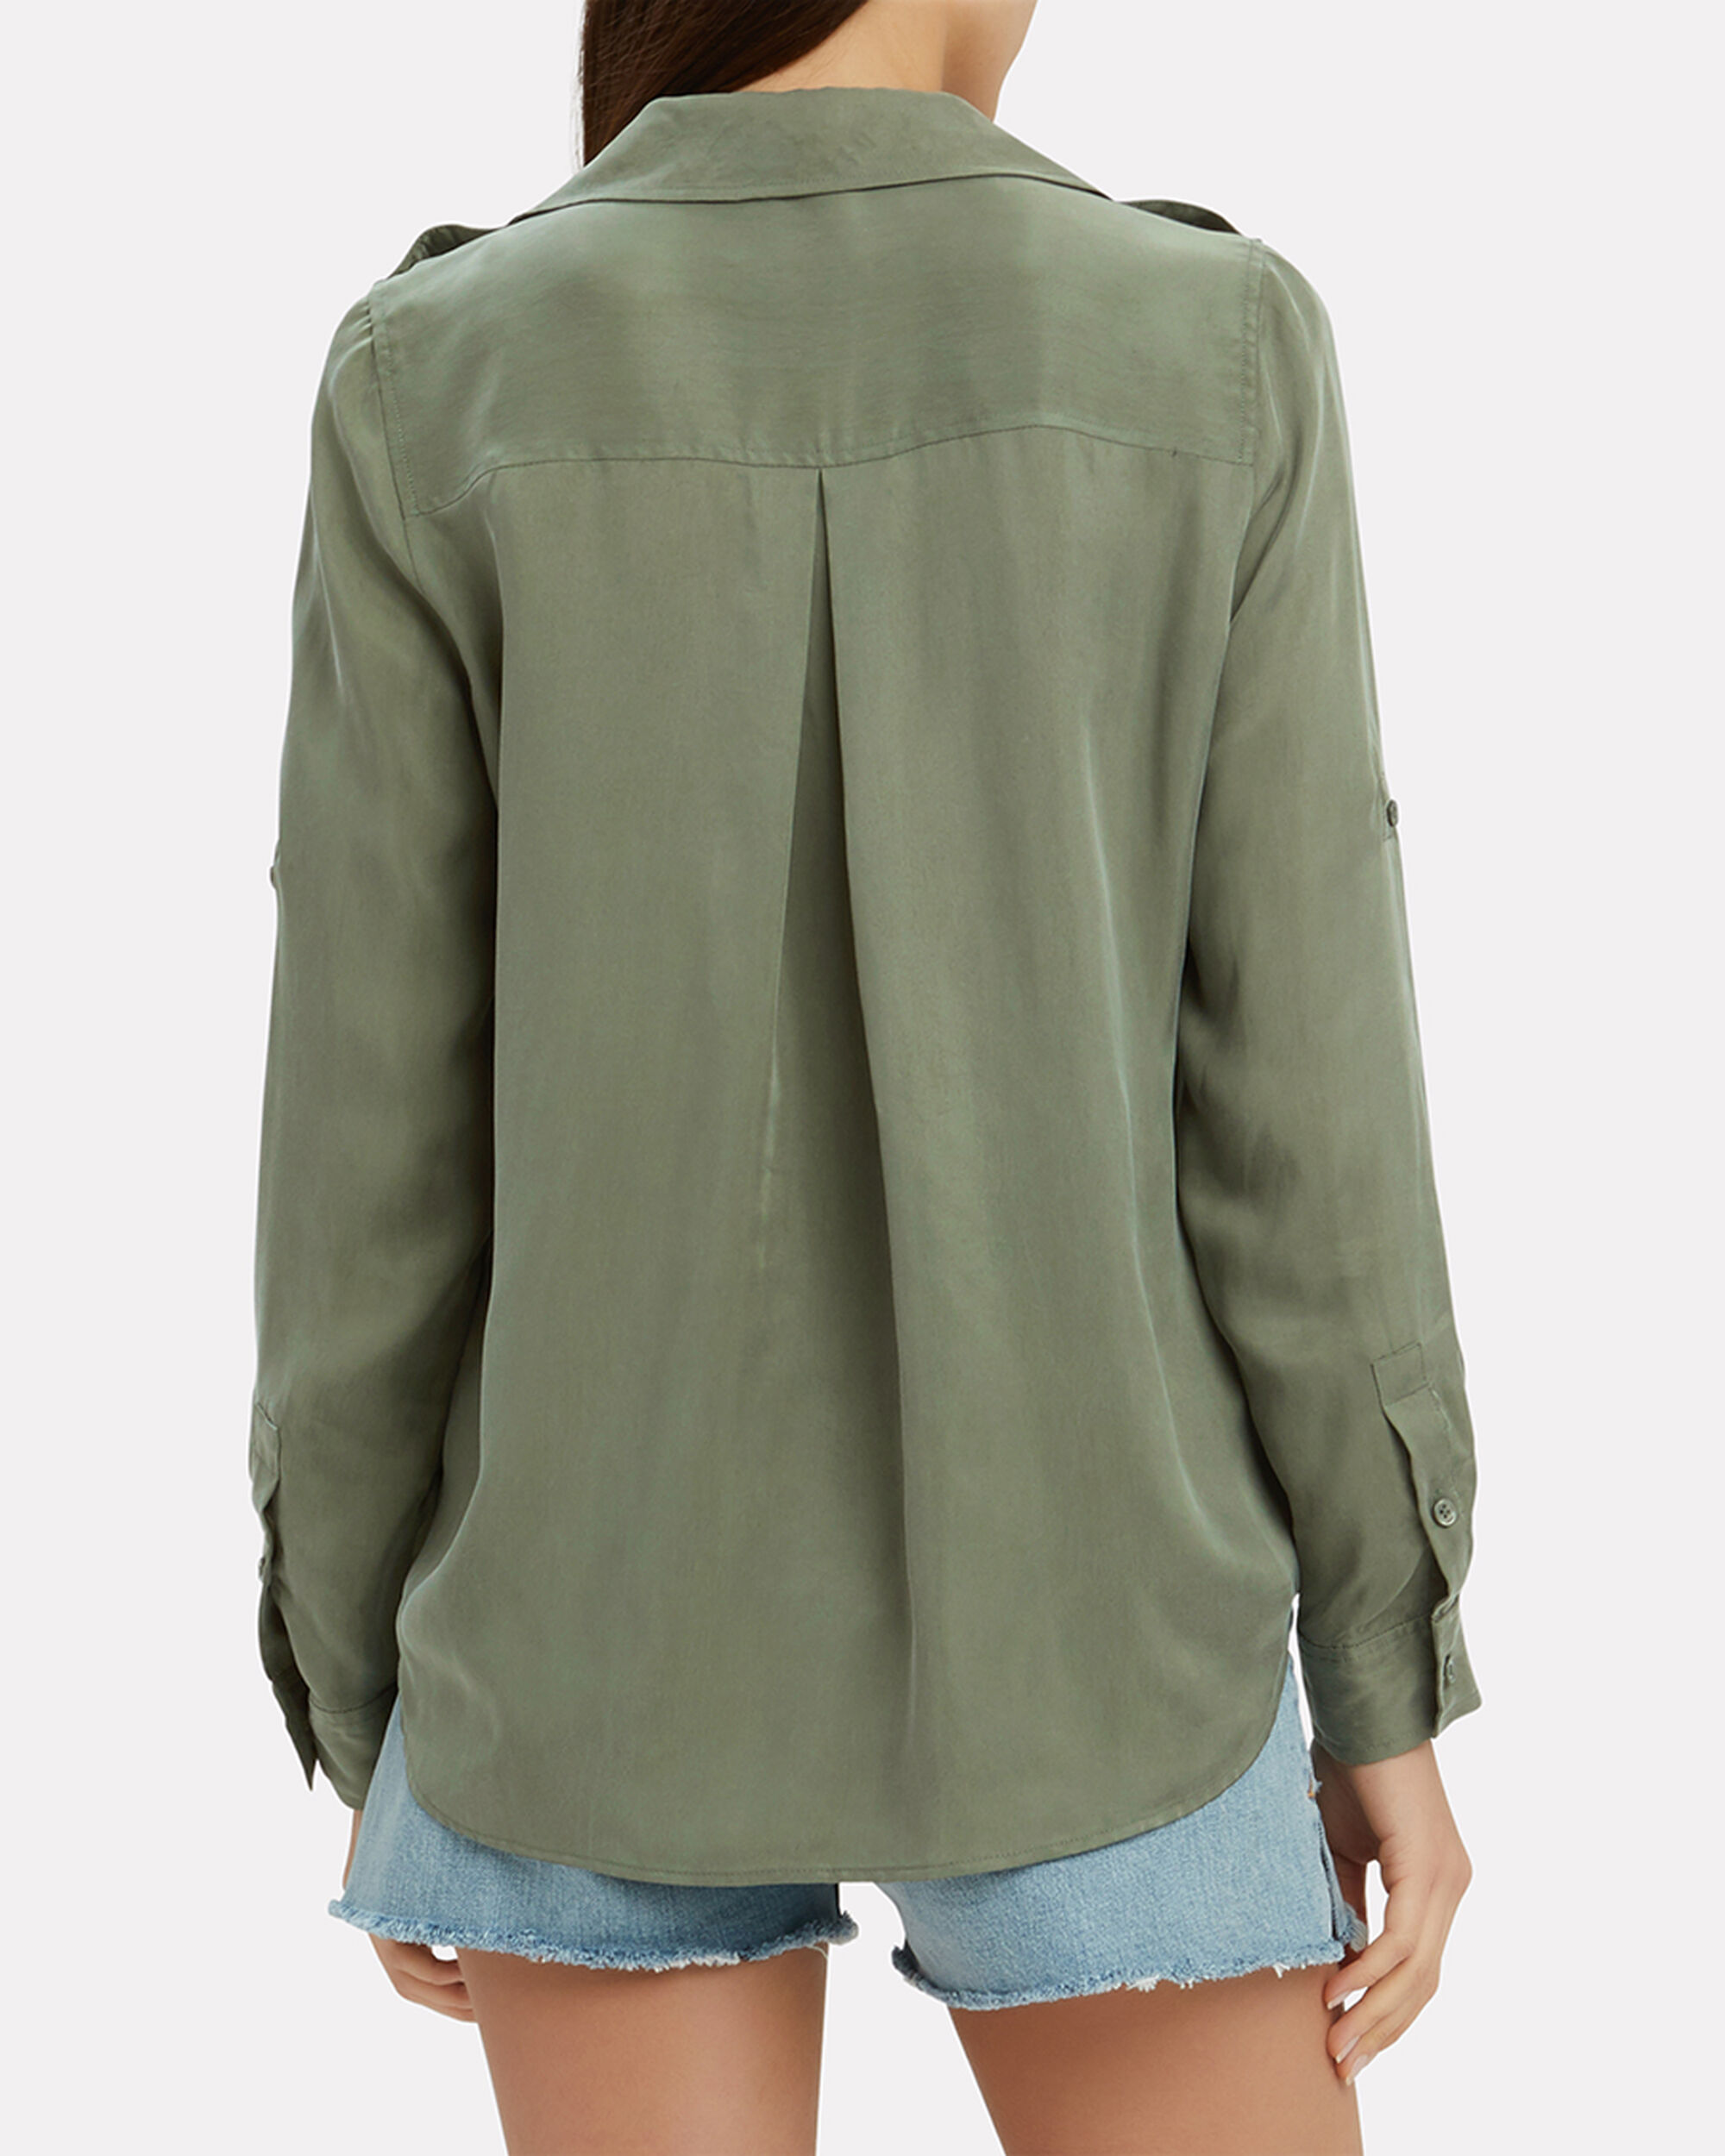 Lunetta Military Shirt, OLIVE/ARMY, hi-res